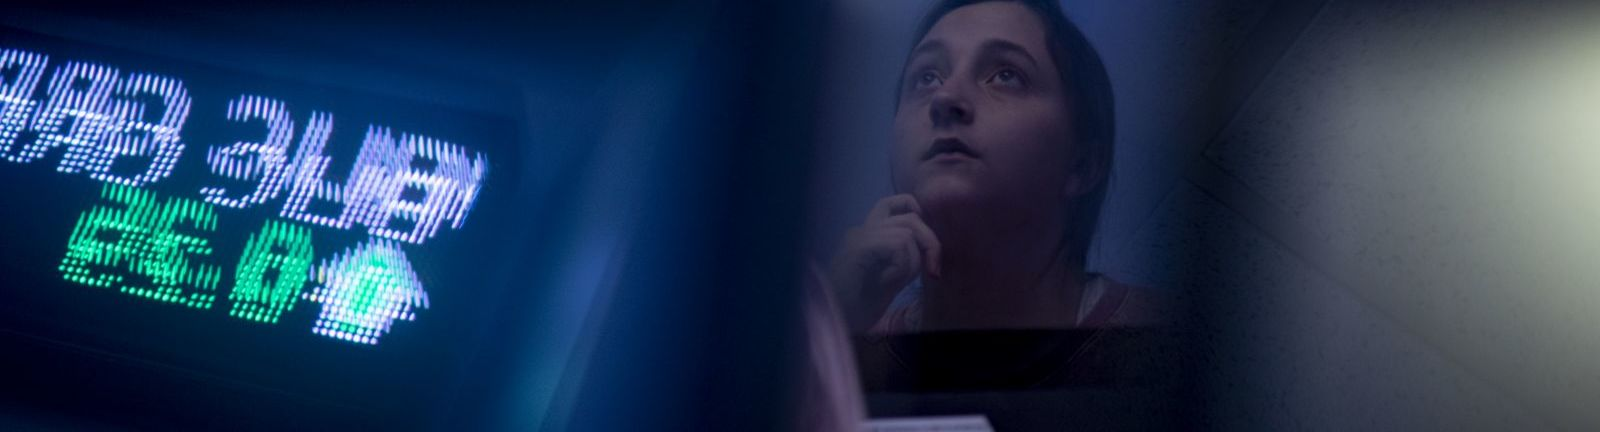 A Fox student listens intently to a lecture on finance.